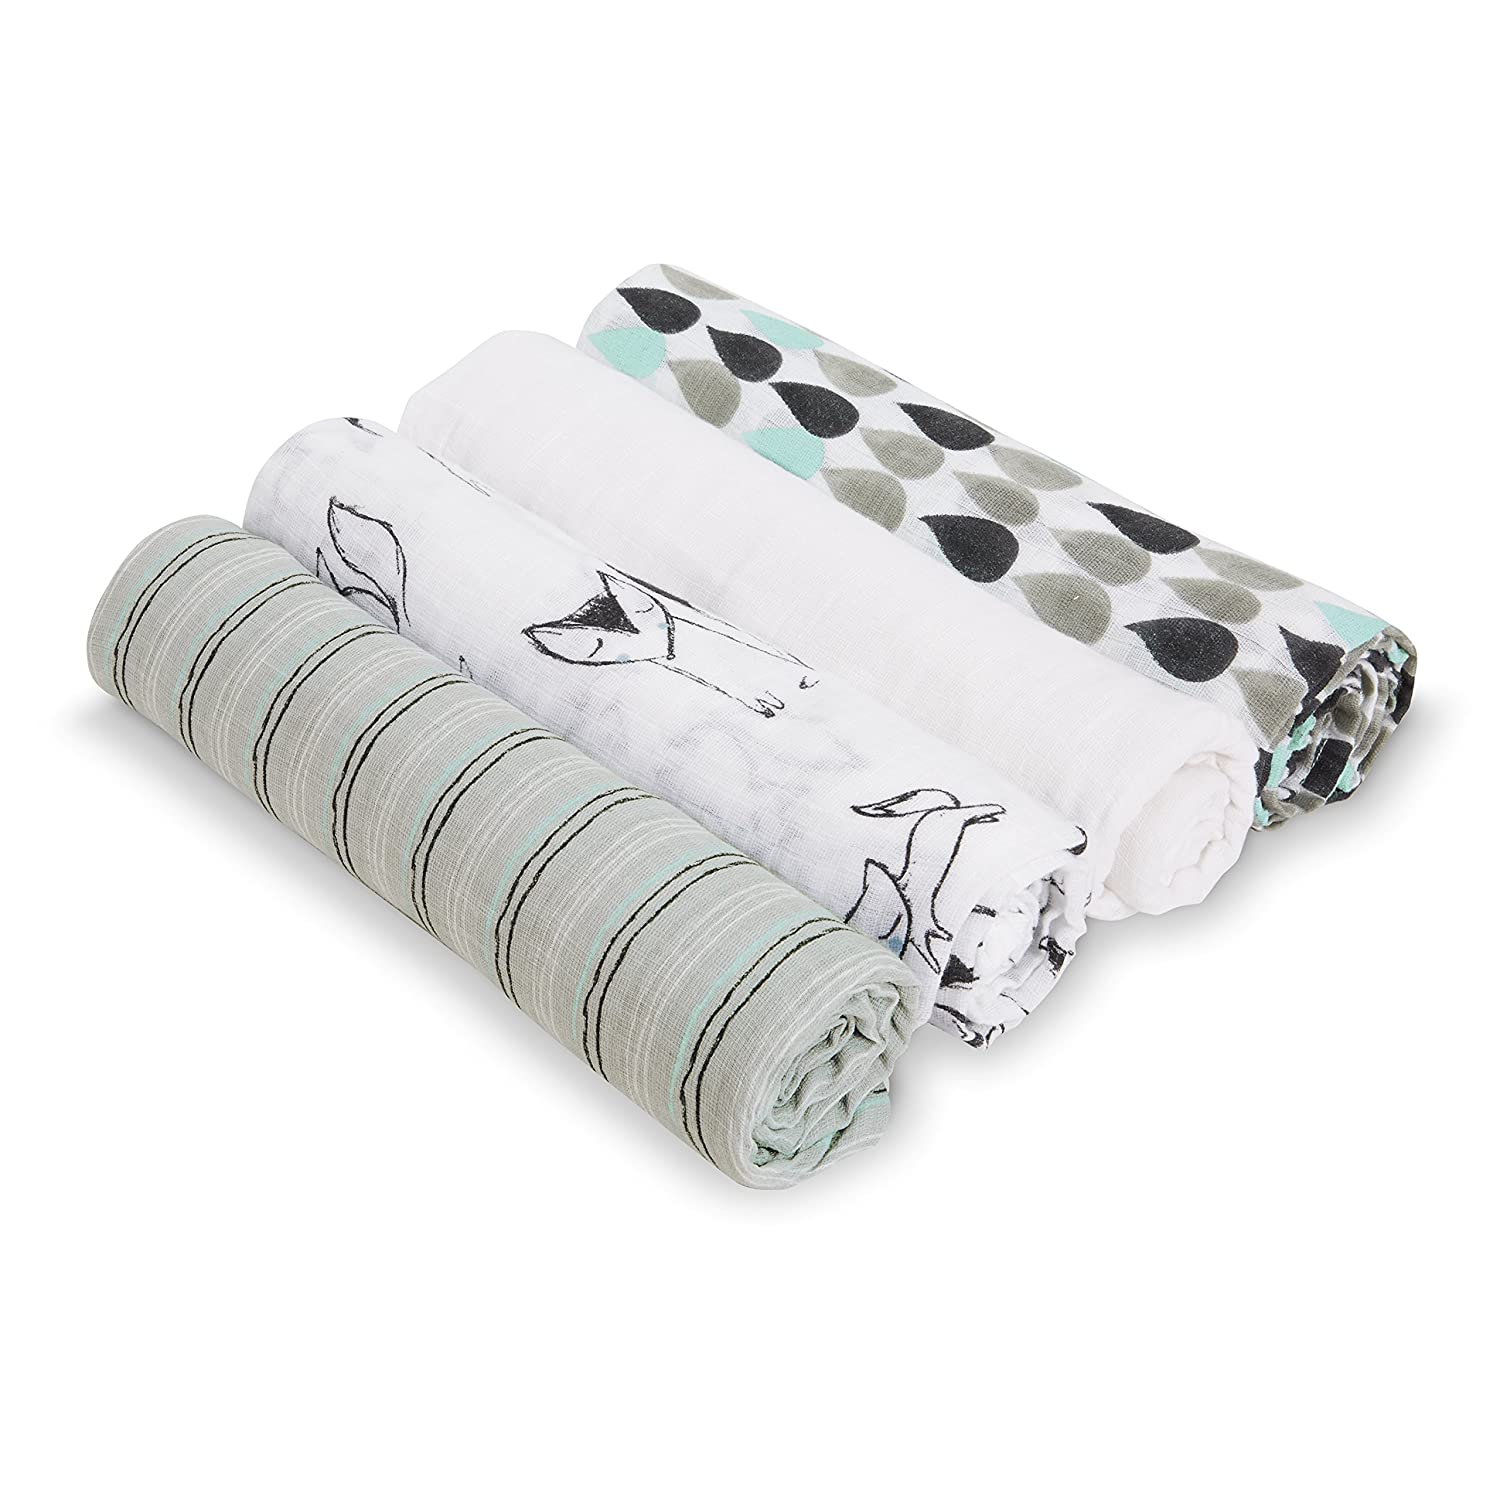 100/% Cotton Muslin Sky high 4-Pack S3107 4-Pack Aden by aden Large 44 X 44 inch anais Baby Muslin Swaddle Blanket